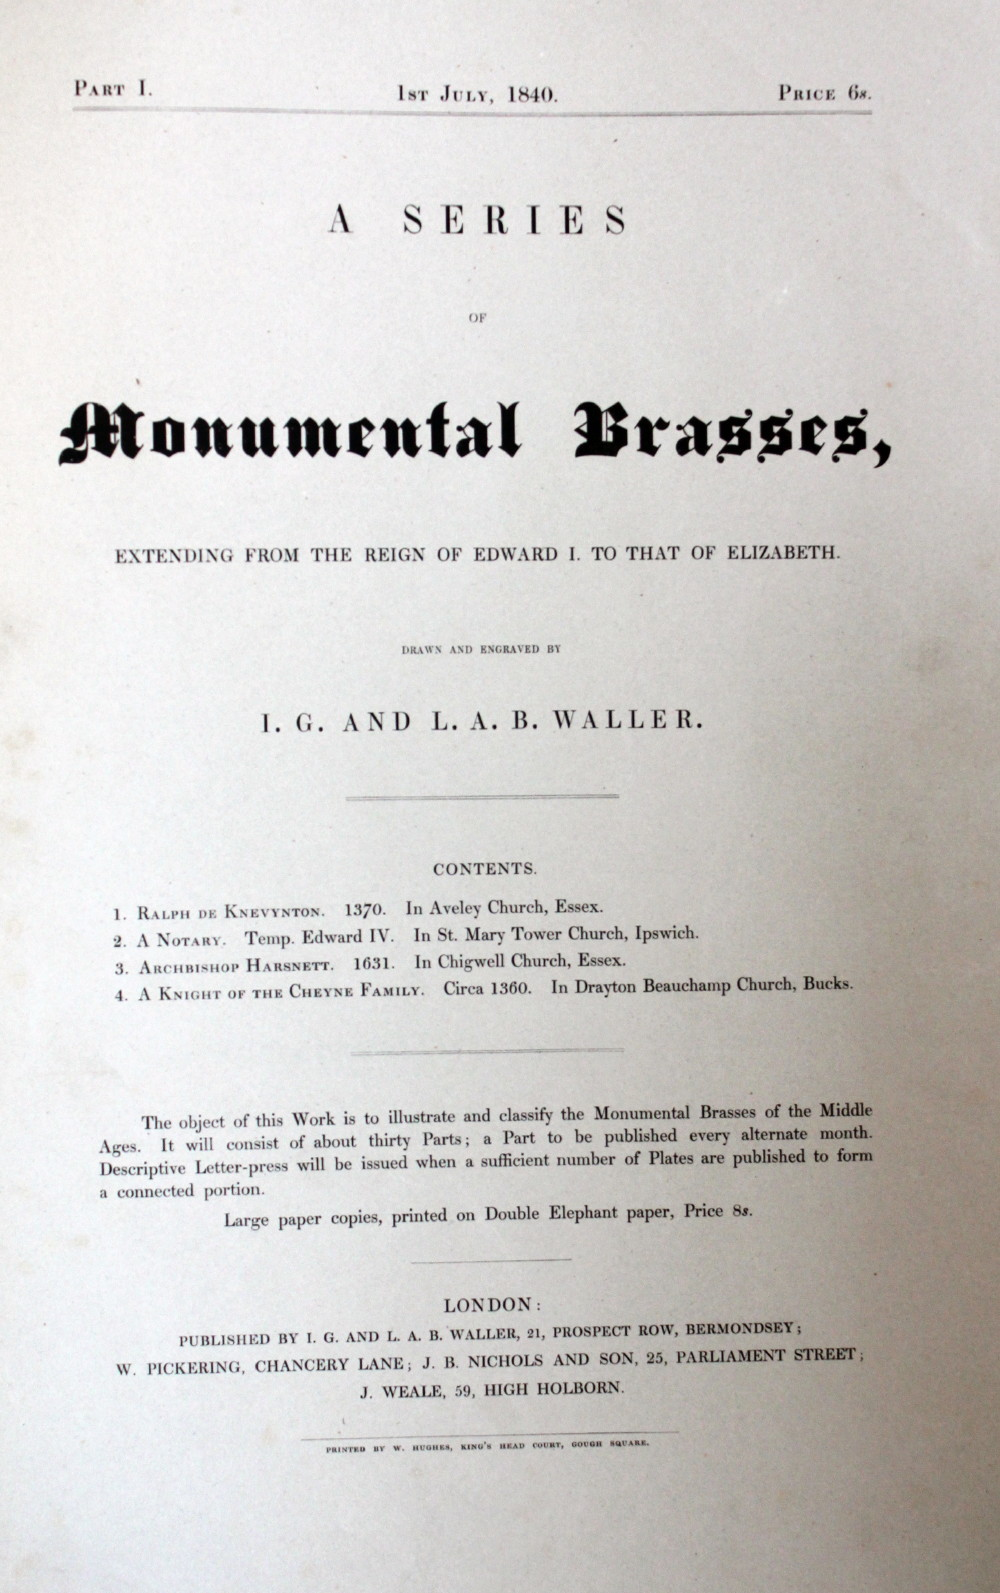 Image for A Series of Monumental Brasses From the Thirteenth to the Sixteenth Centuries.